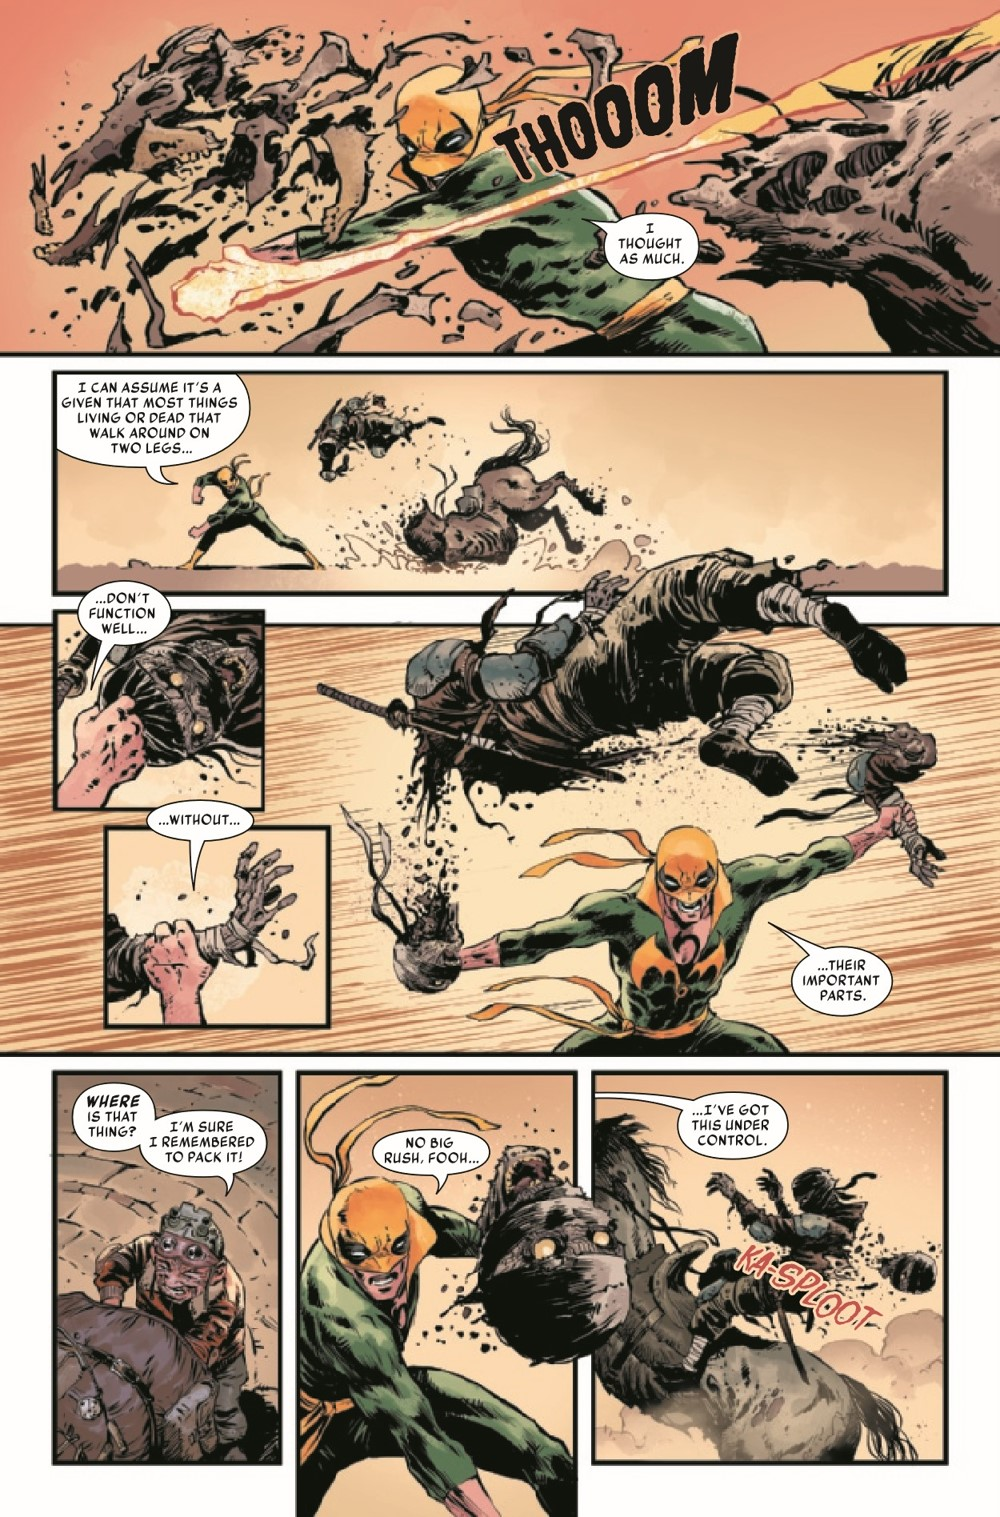 IRONFISTHOD2021001_Preview-5 ComicList Previews: IRON FIST HEART OF THE DRAGON #1 (OF 6)